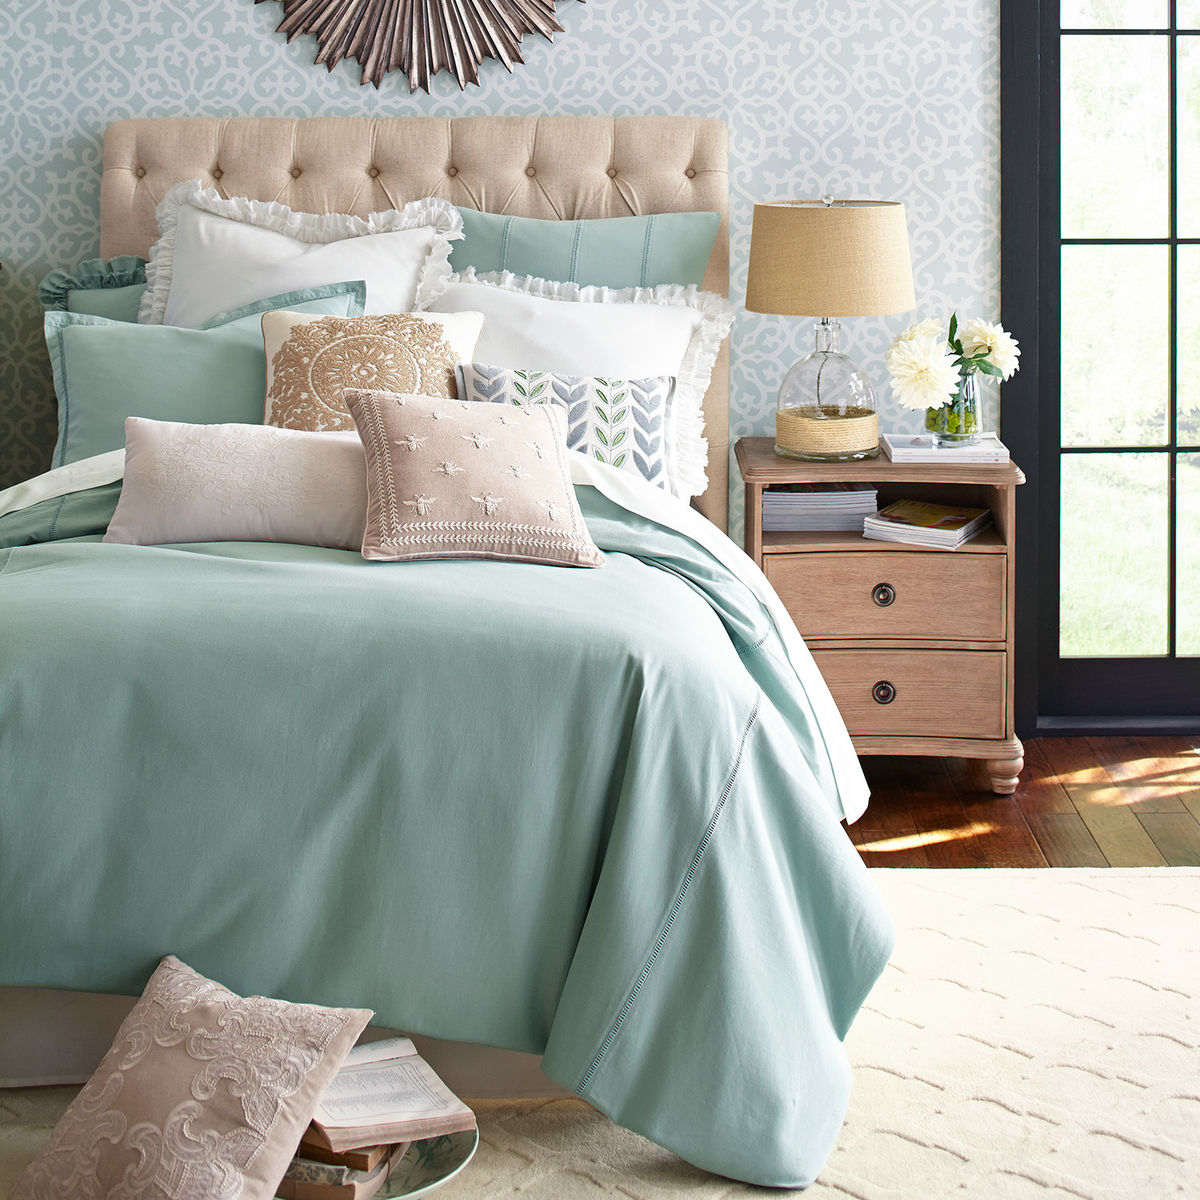 Sorrento Blue Duvet Cover & Sham